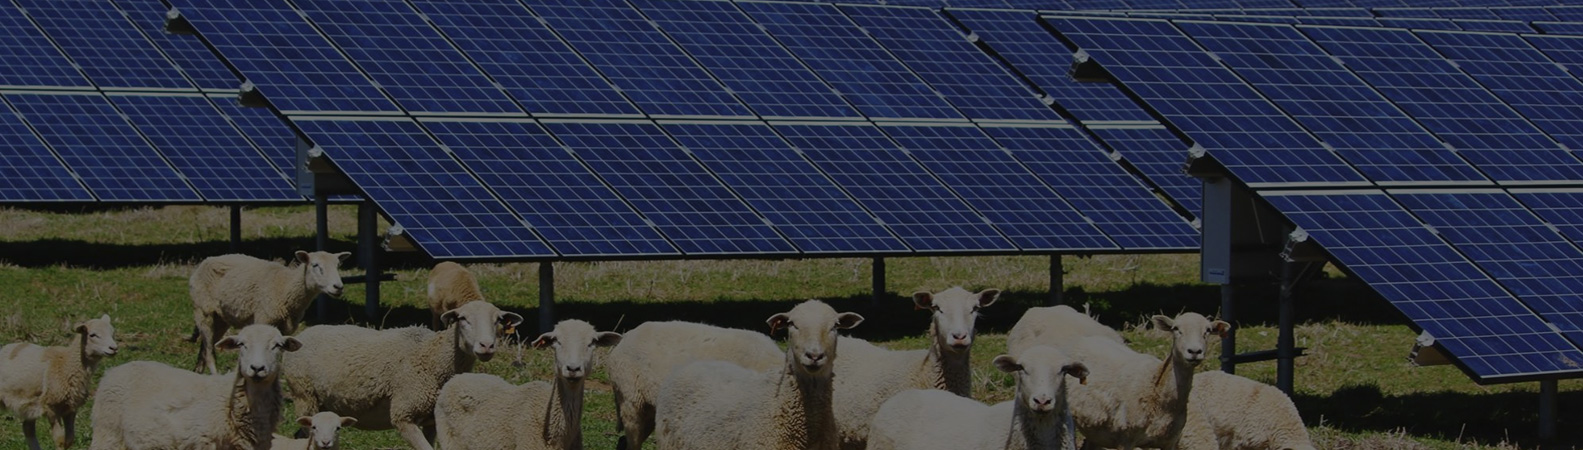 Farmers can now use solar power and say goodbye to electrical grid